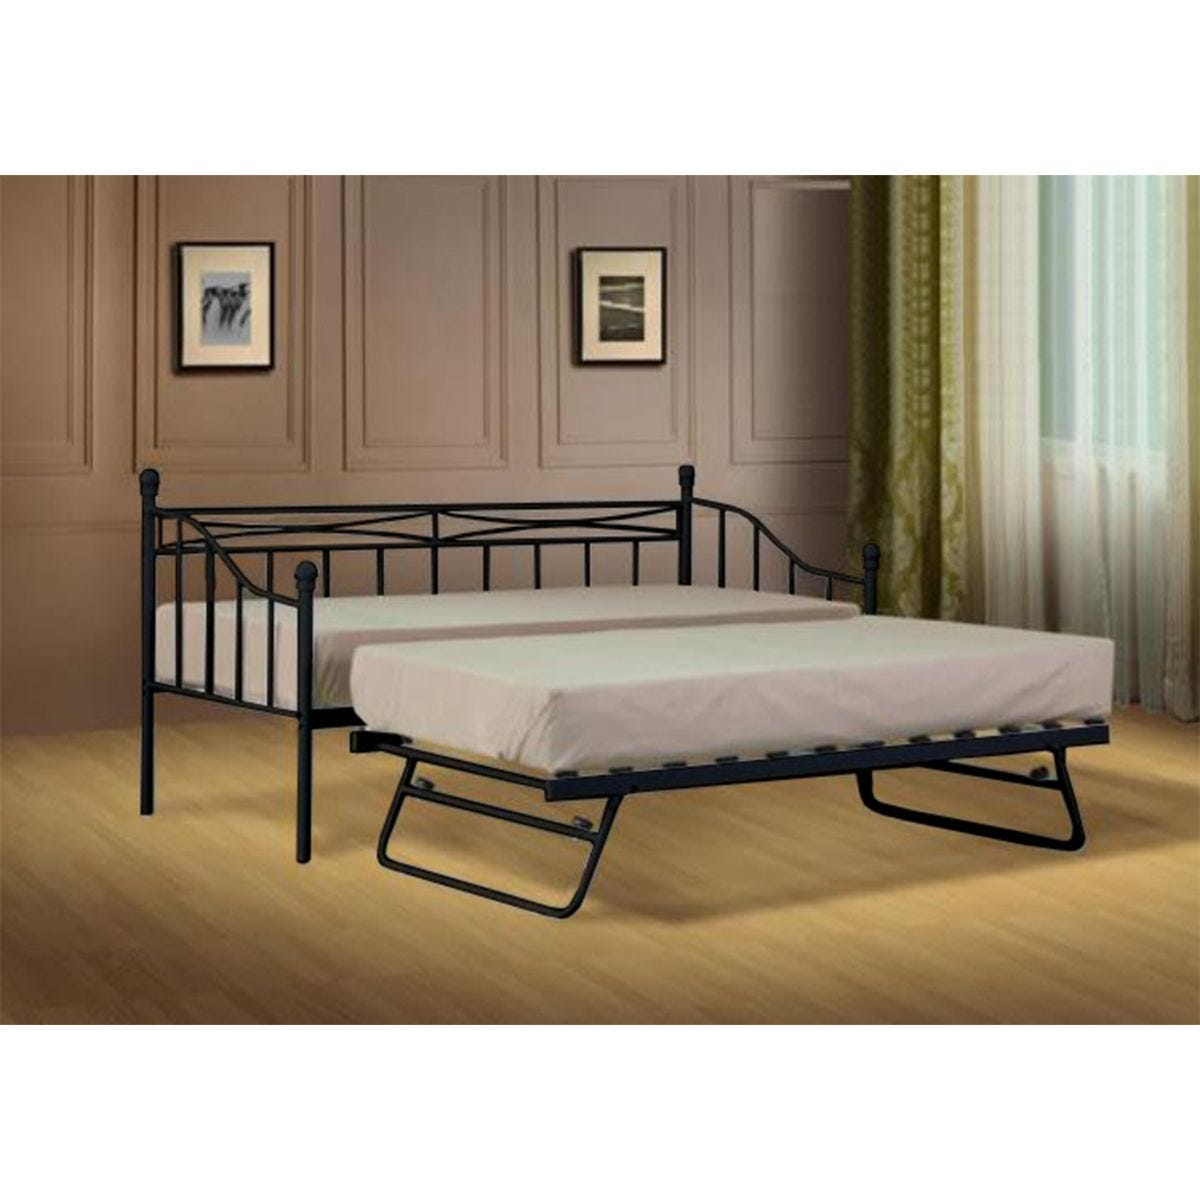 Alicia Budget Metal Day Bed Without Trundle Black